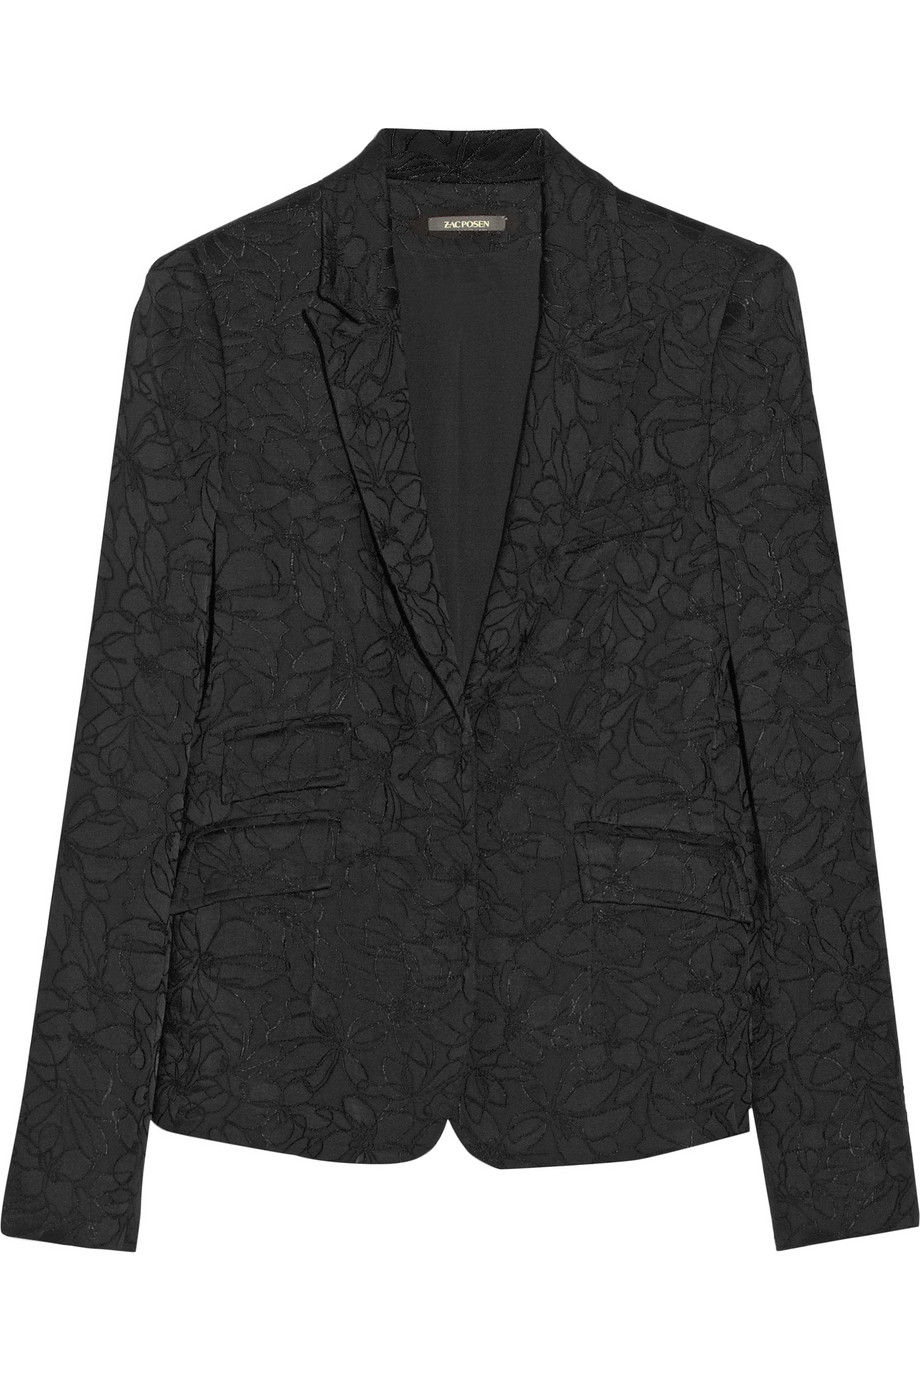 Zac Posen Embroidered satin blazer – 75% at THE OUTNET.COM